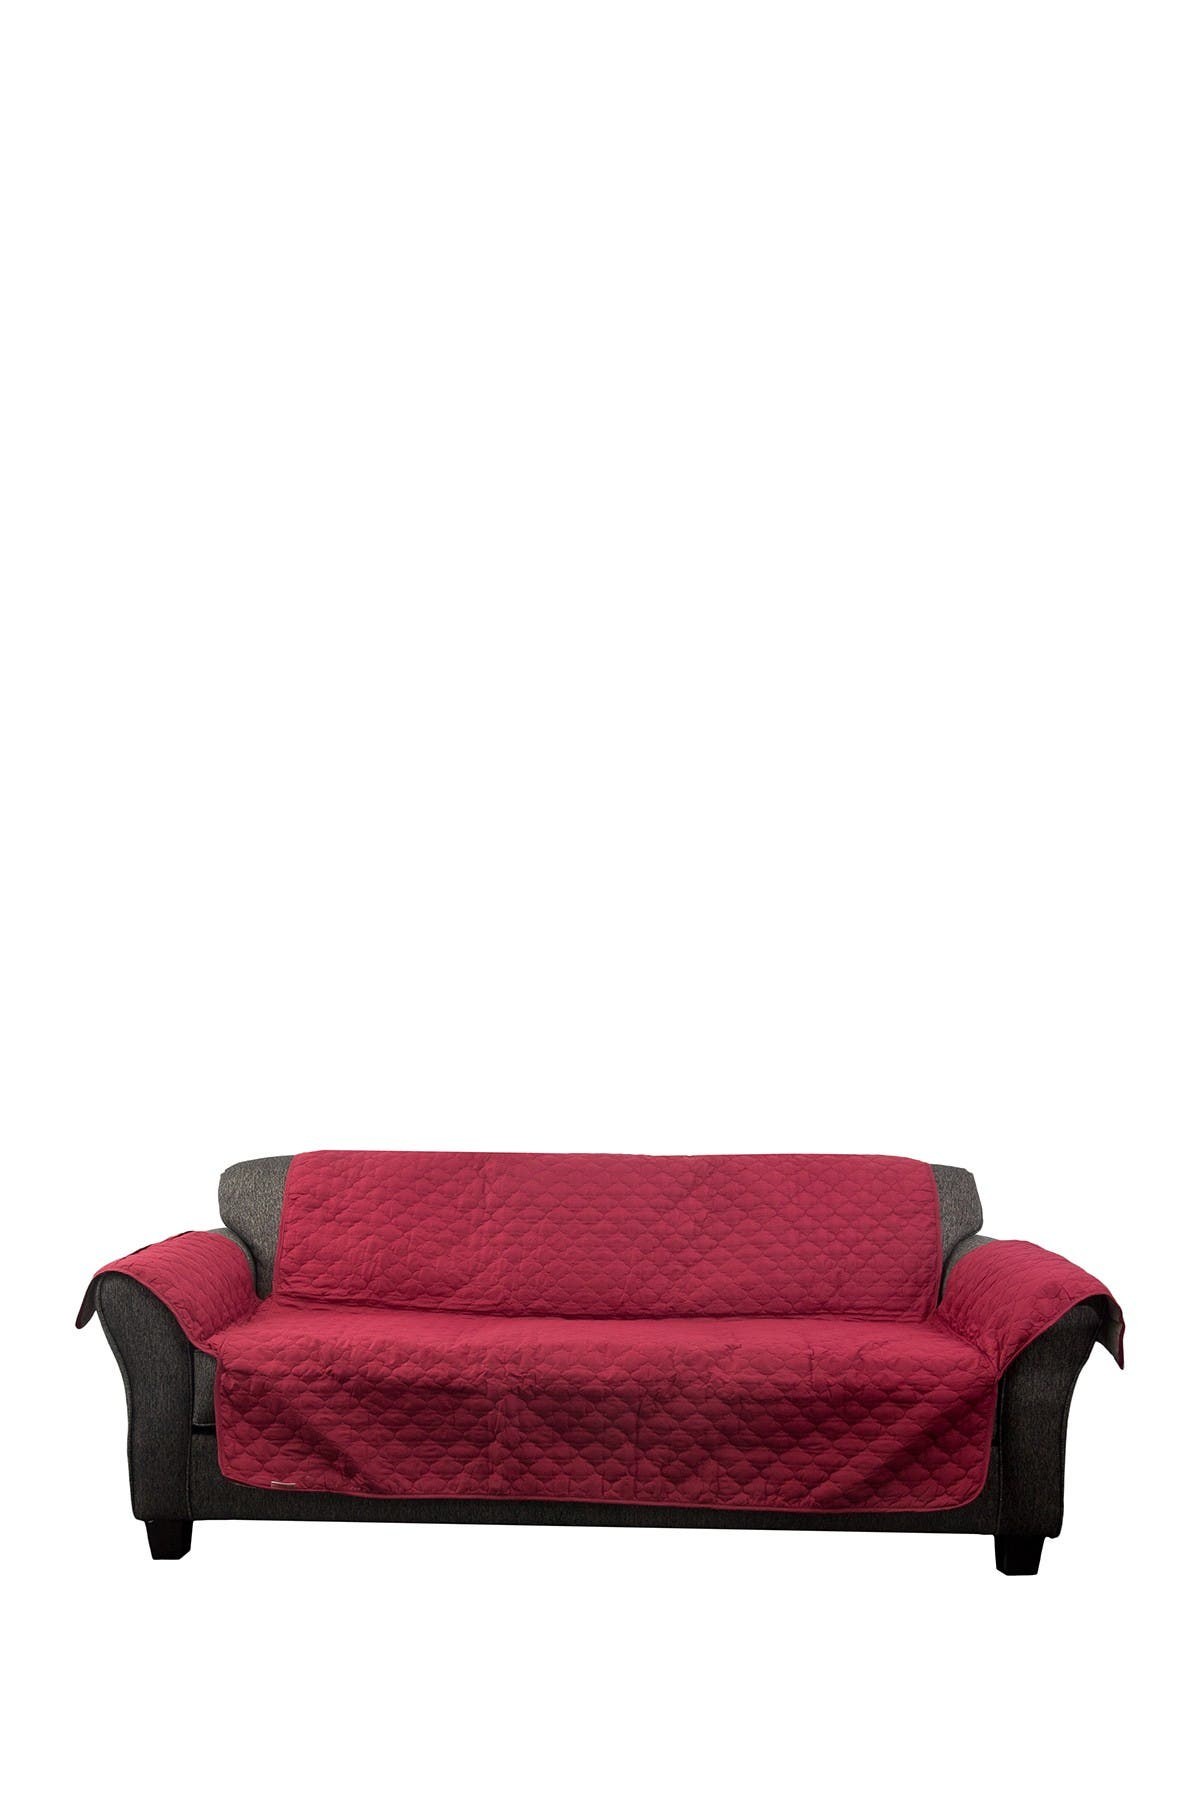 Image of Duck River Textile Garnet/Natural Reynold Reversible Water Resistant Microfiber Sofa Cover